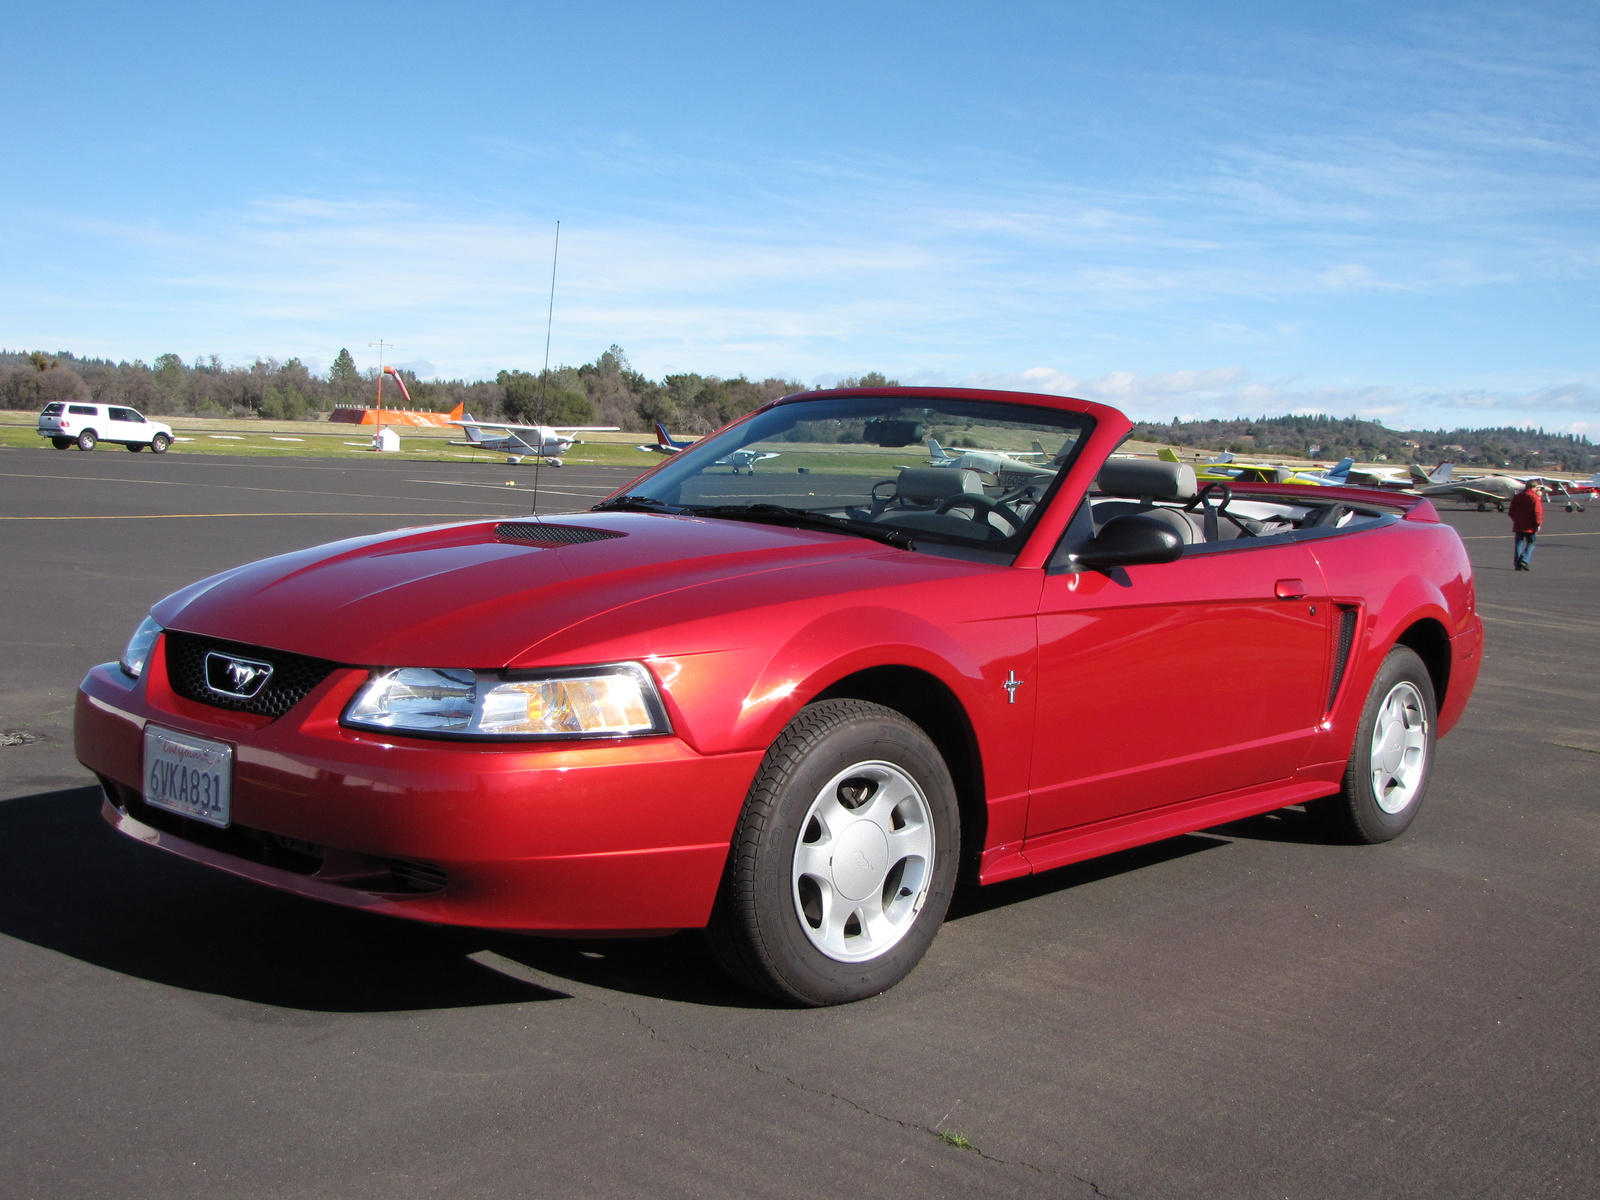 Ford Mustang Base Convertible Pic